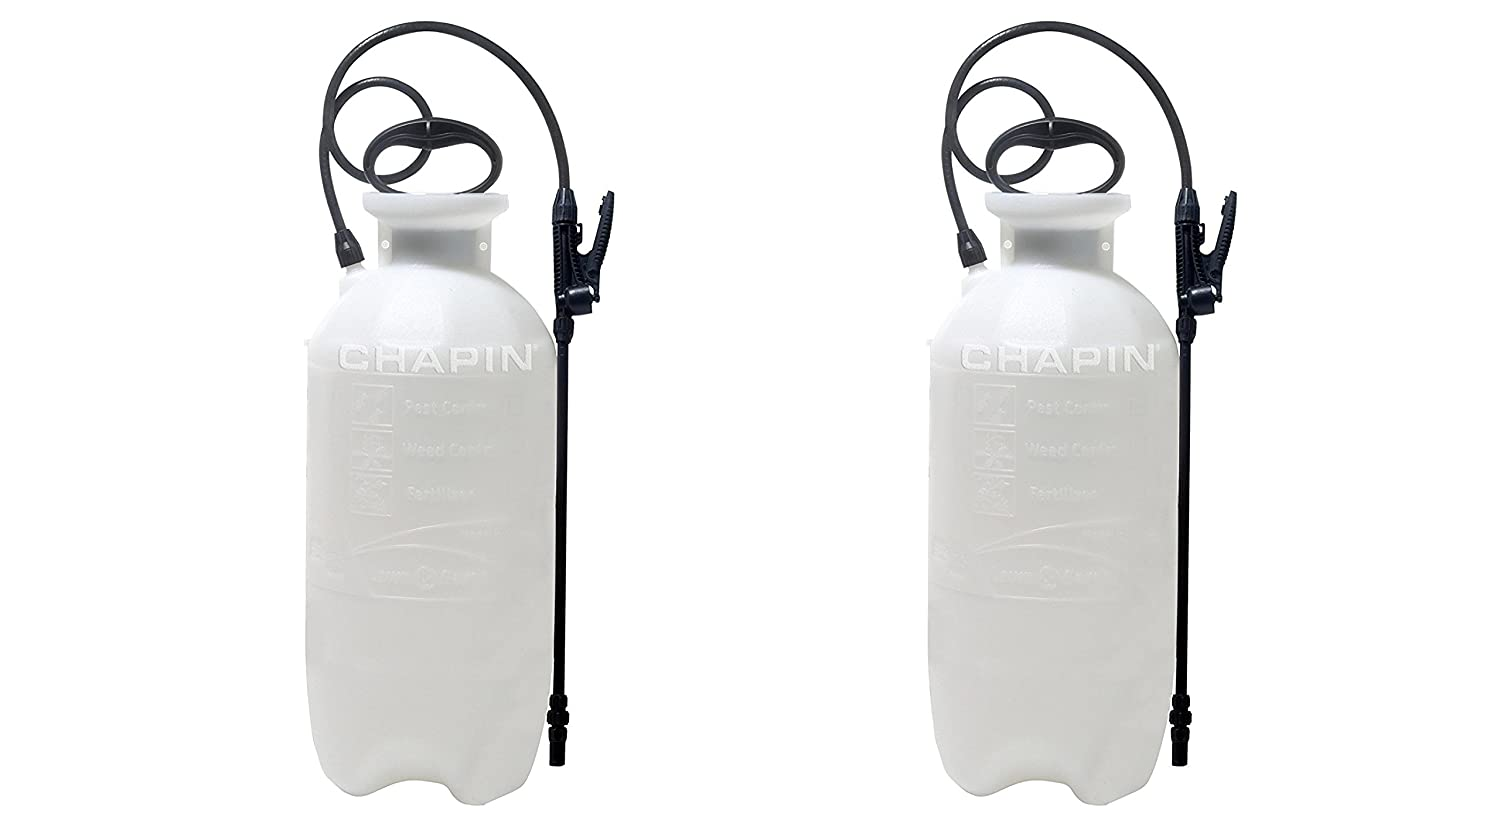 Chapin 20003 ZIvRdS Poly Lawn and Garden Sprayer For Fertilizer, Herbicides and Pesticides, 2Pack (3 gallon)